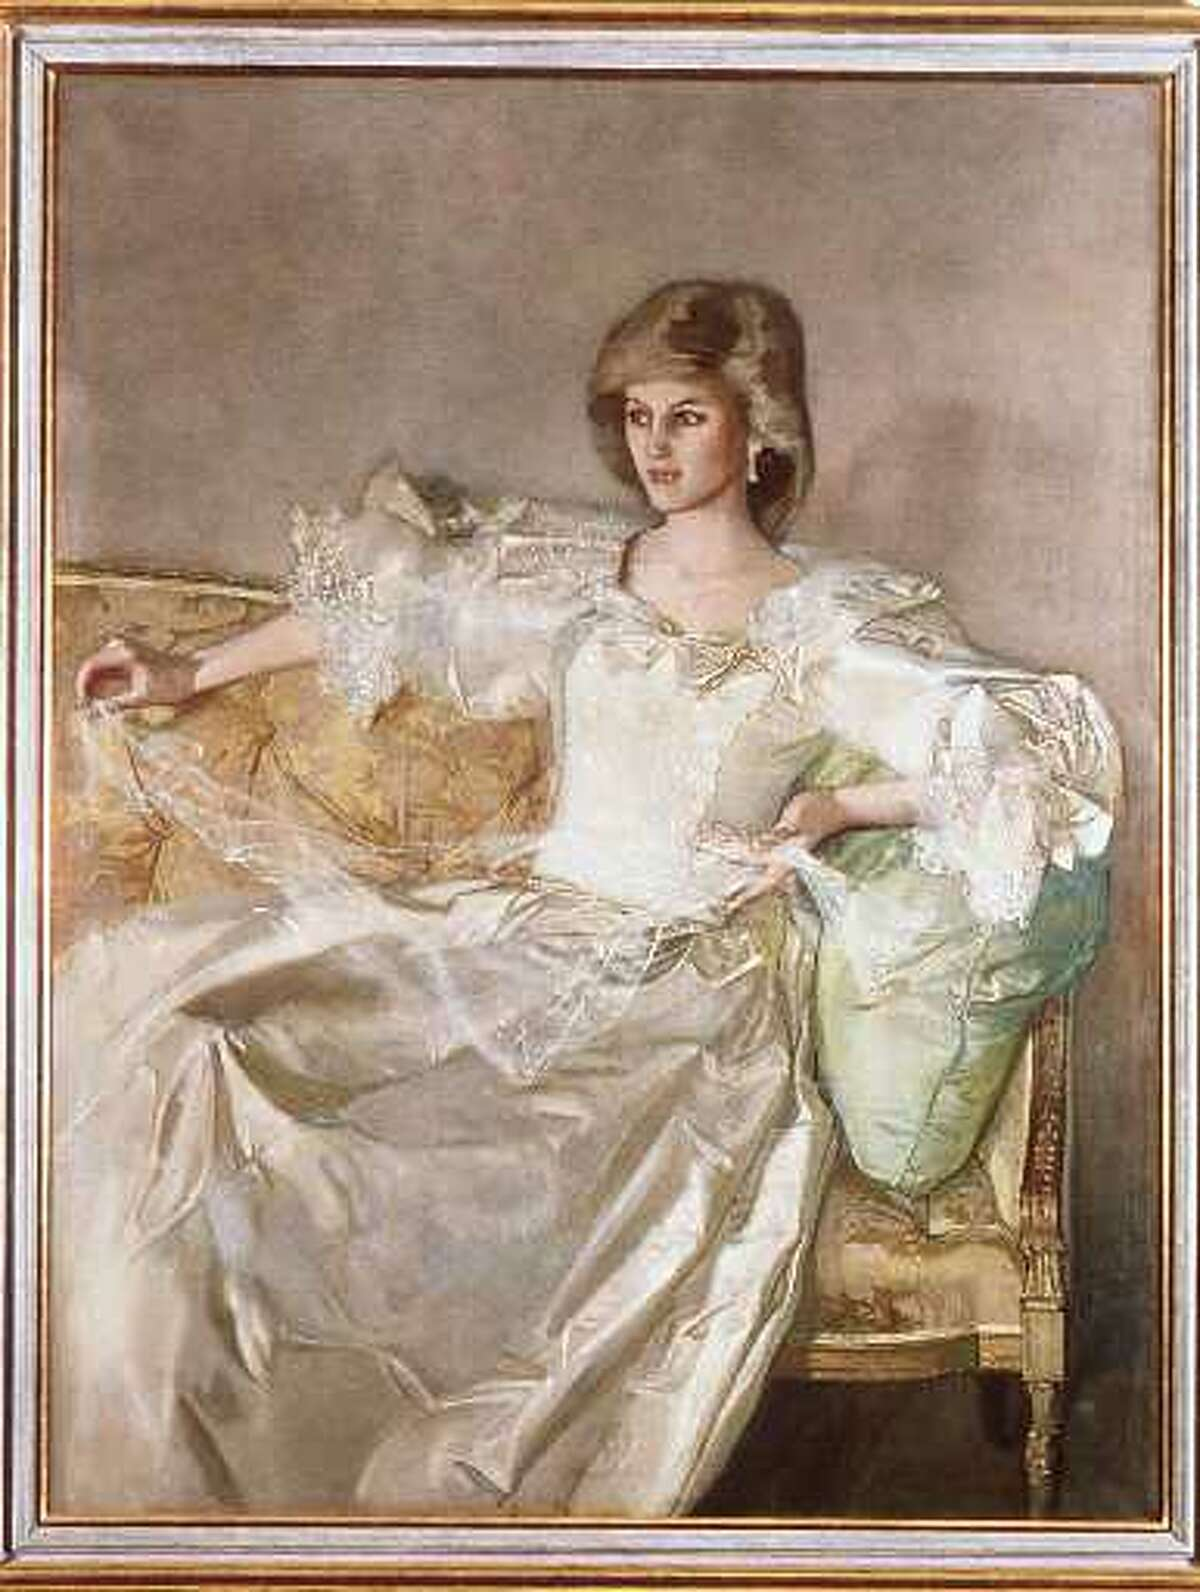 A previously unseen portrait of Princess Diana in her wedding dress, which is among paintings in a private collection that Prince Charles has lent for an exhibition of works collected by himself and four previous holders of the title of Prince of Wales. The portrait, by artist John Ward, shows the late princess posing at Kensington Palace in 1984. It is among 300 works of art and craft taken from the royal family's palaces and other homes which will be on display at the Museum of Wales in Cardiff. (AP Photo/HO).